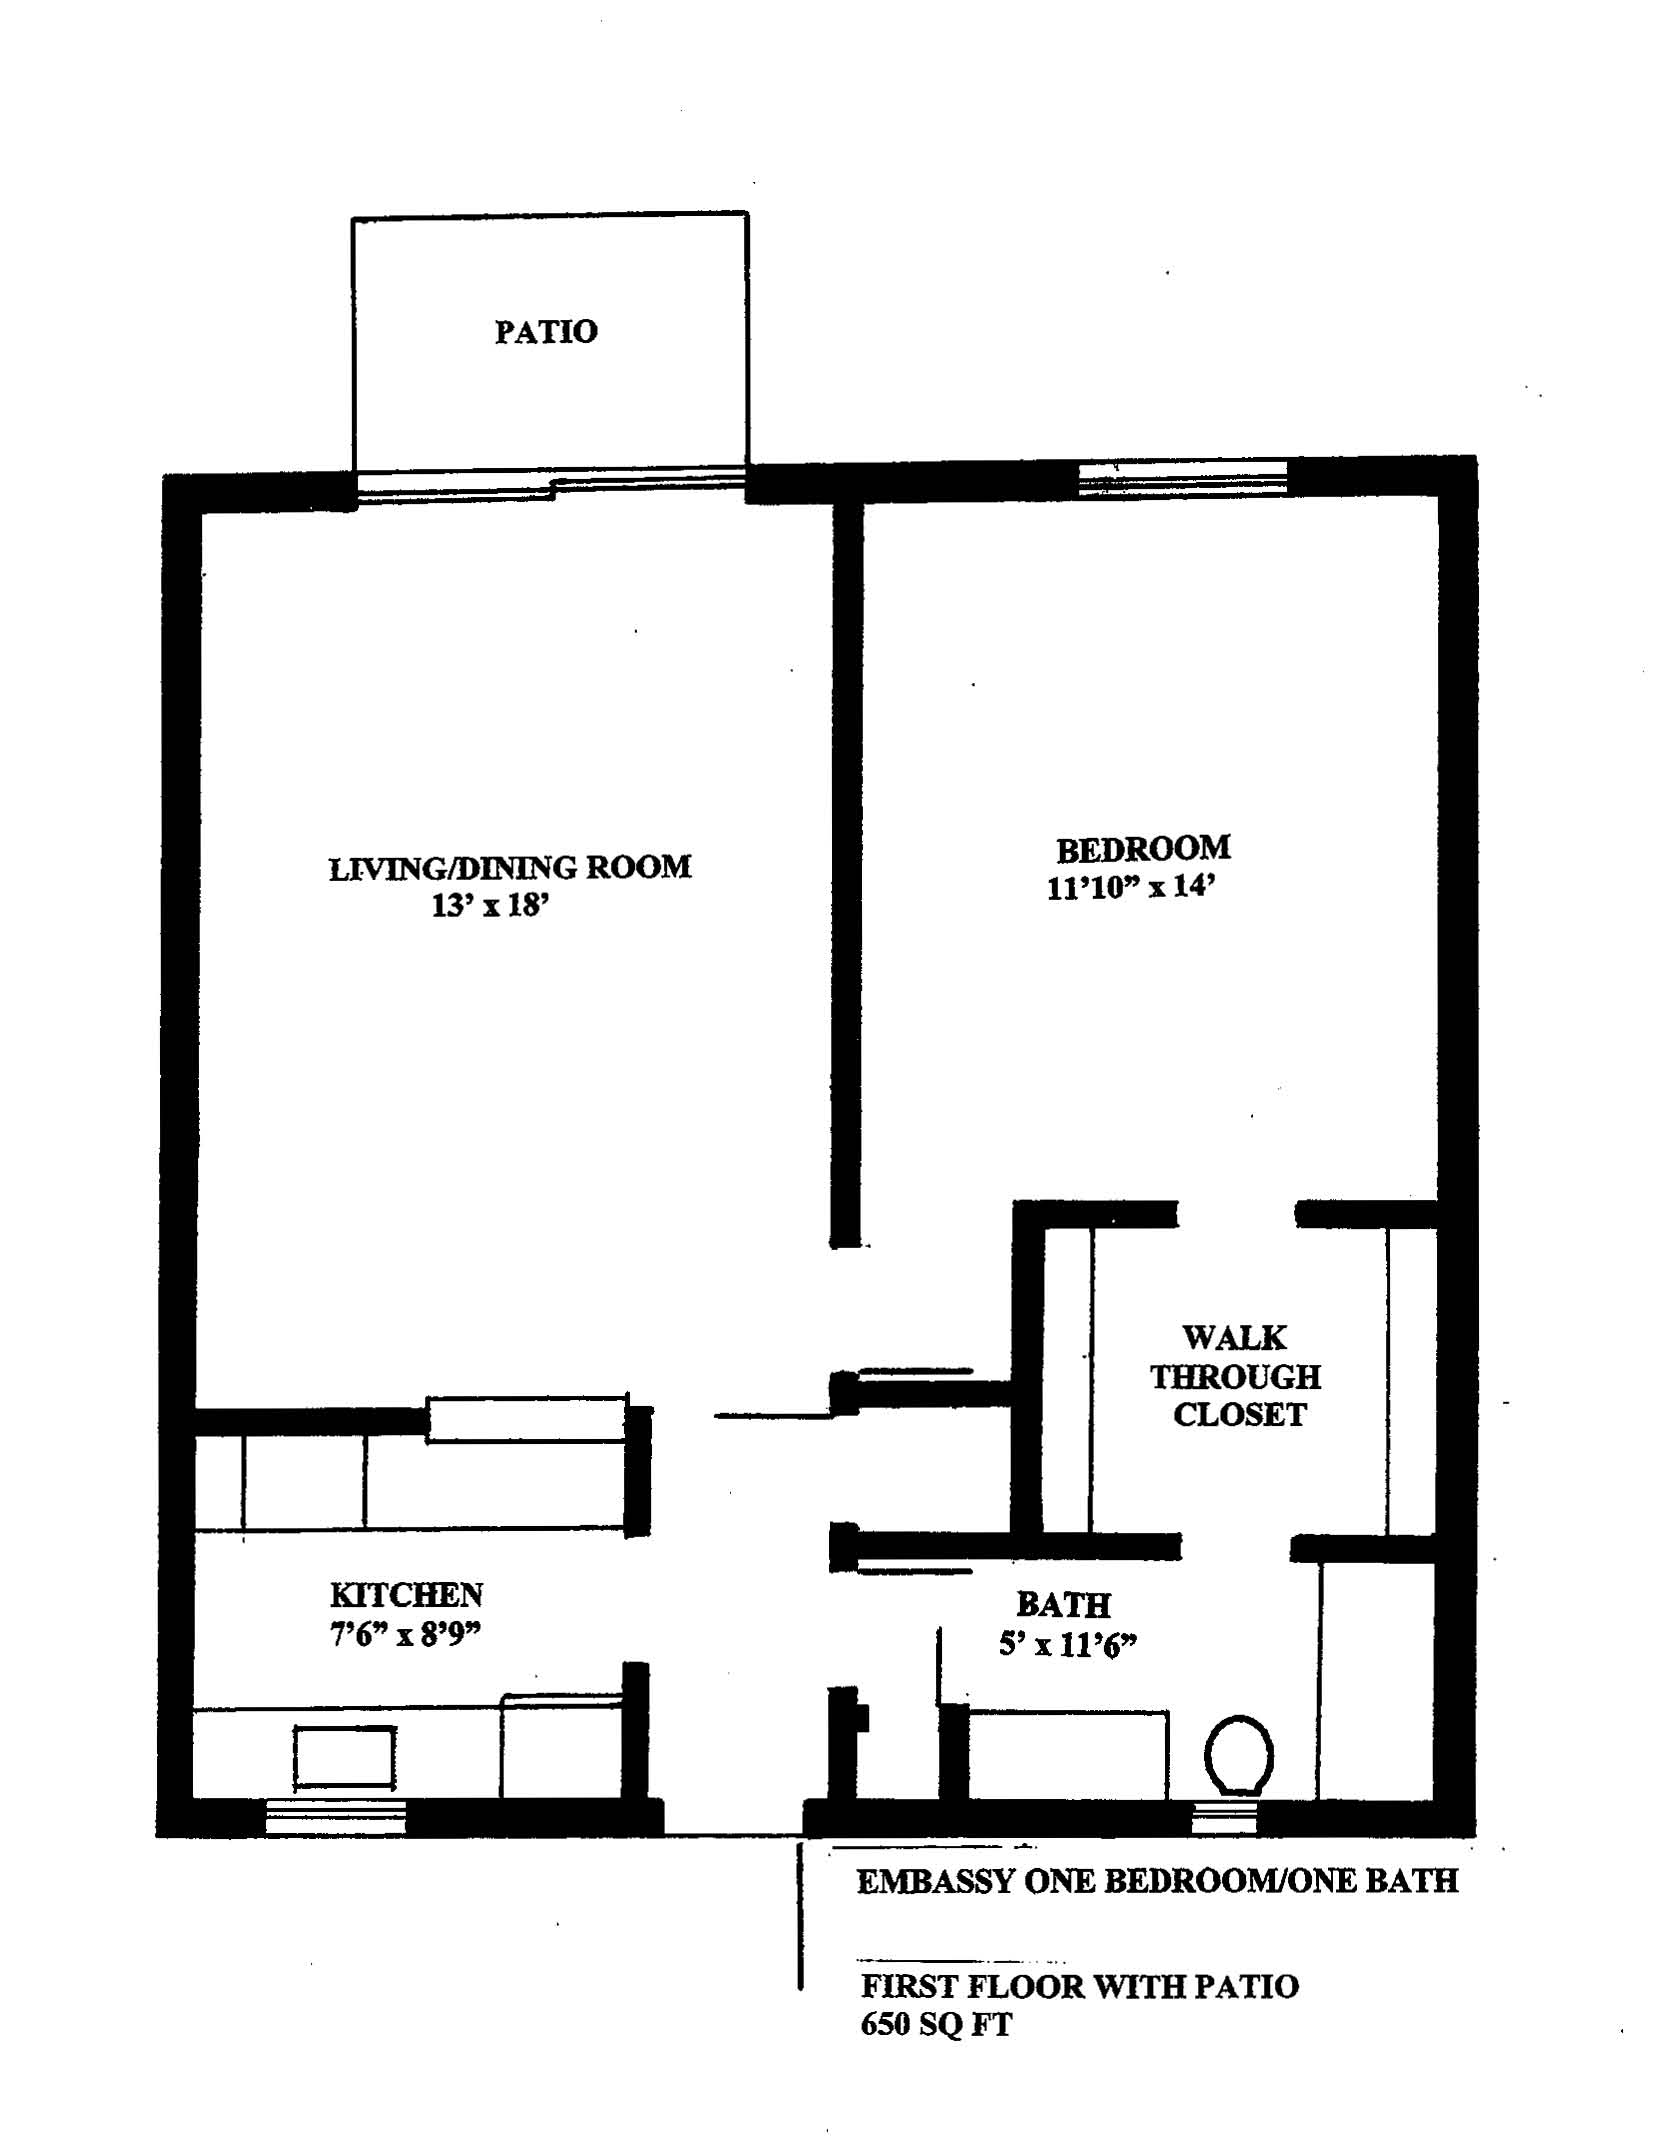 WestShore Apartments/Embassy Apartments - Floorplan - EMBASSY 1A - Available NOW Located at Embassy Apartments